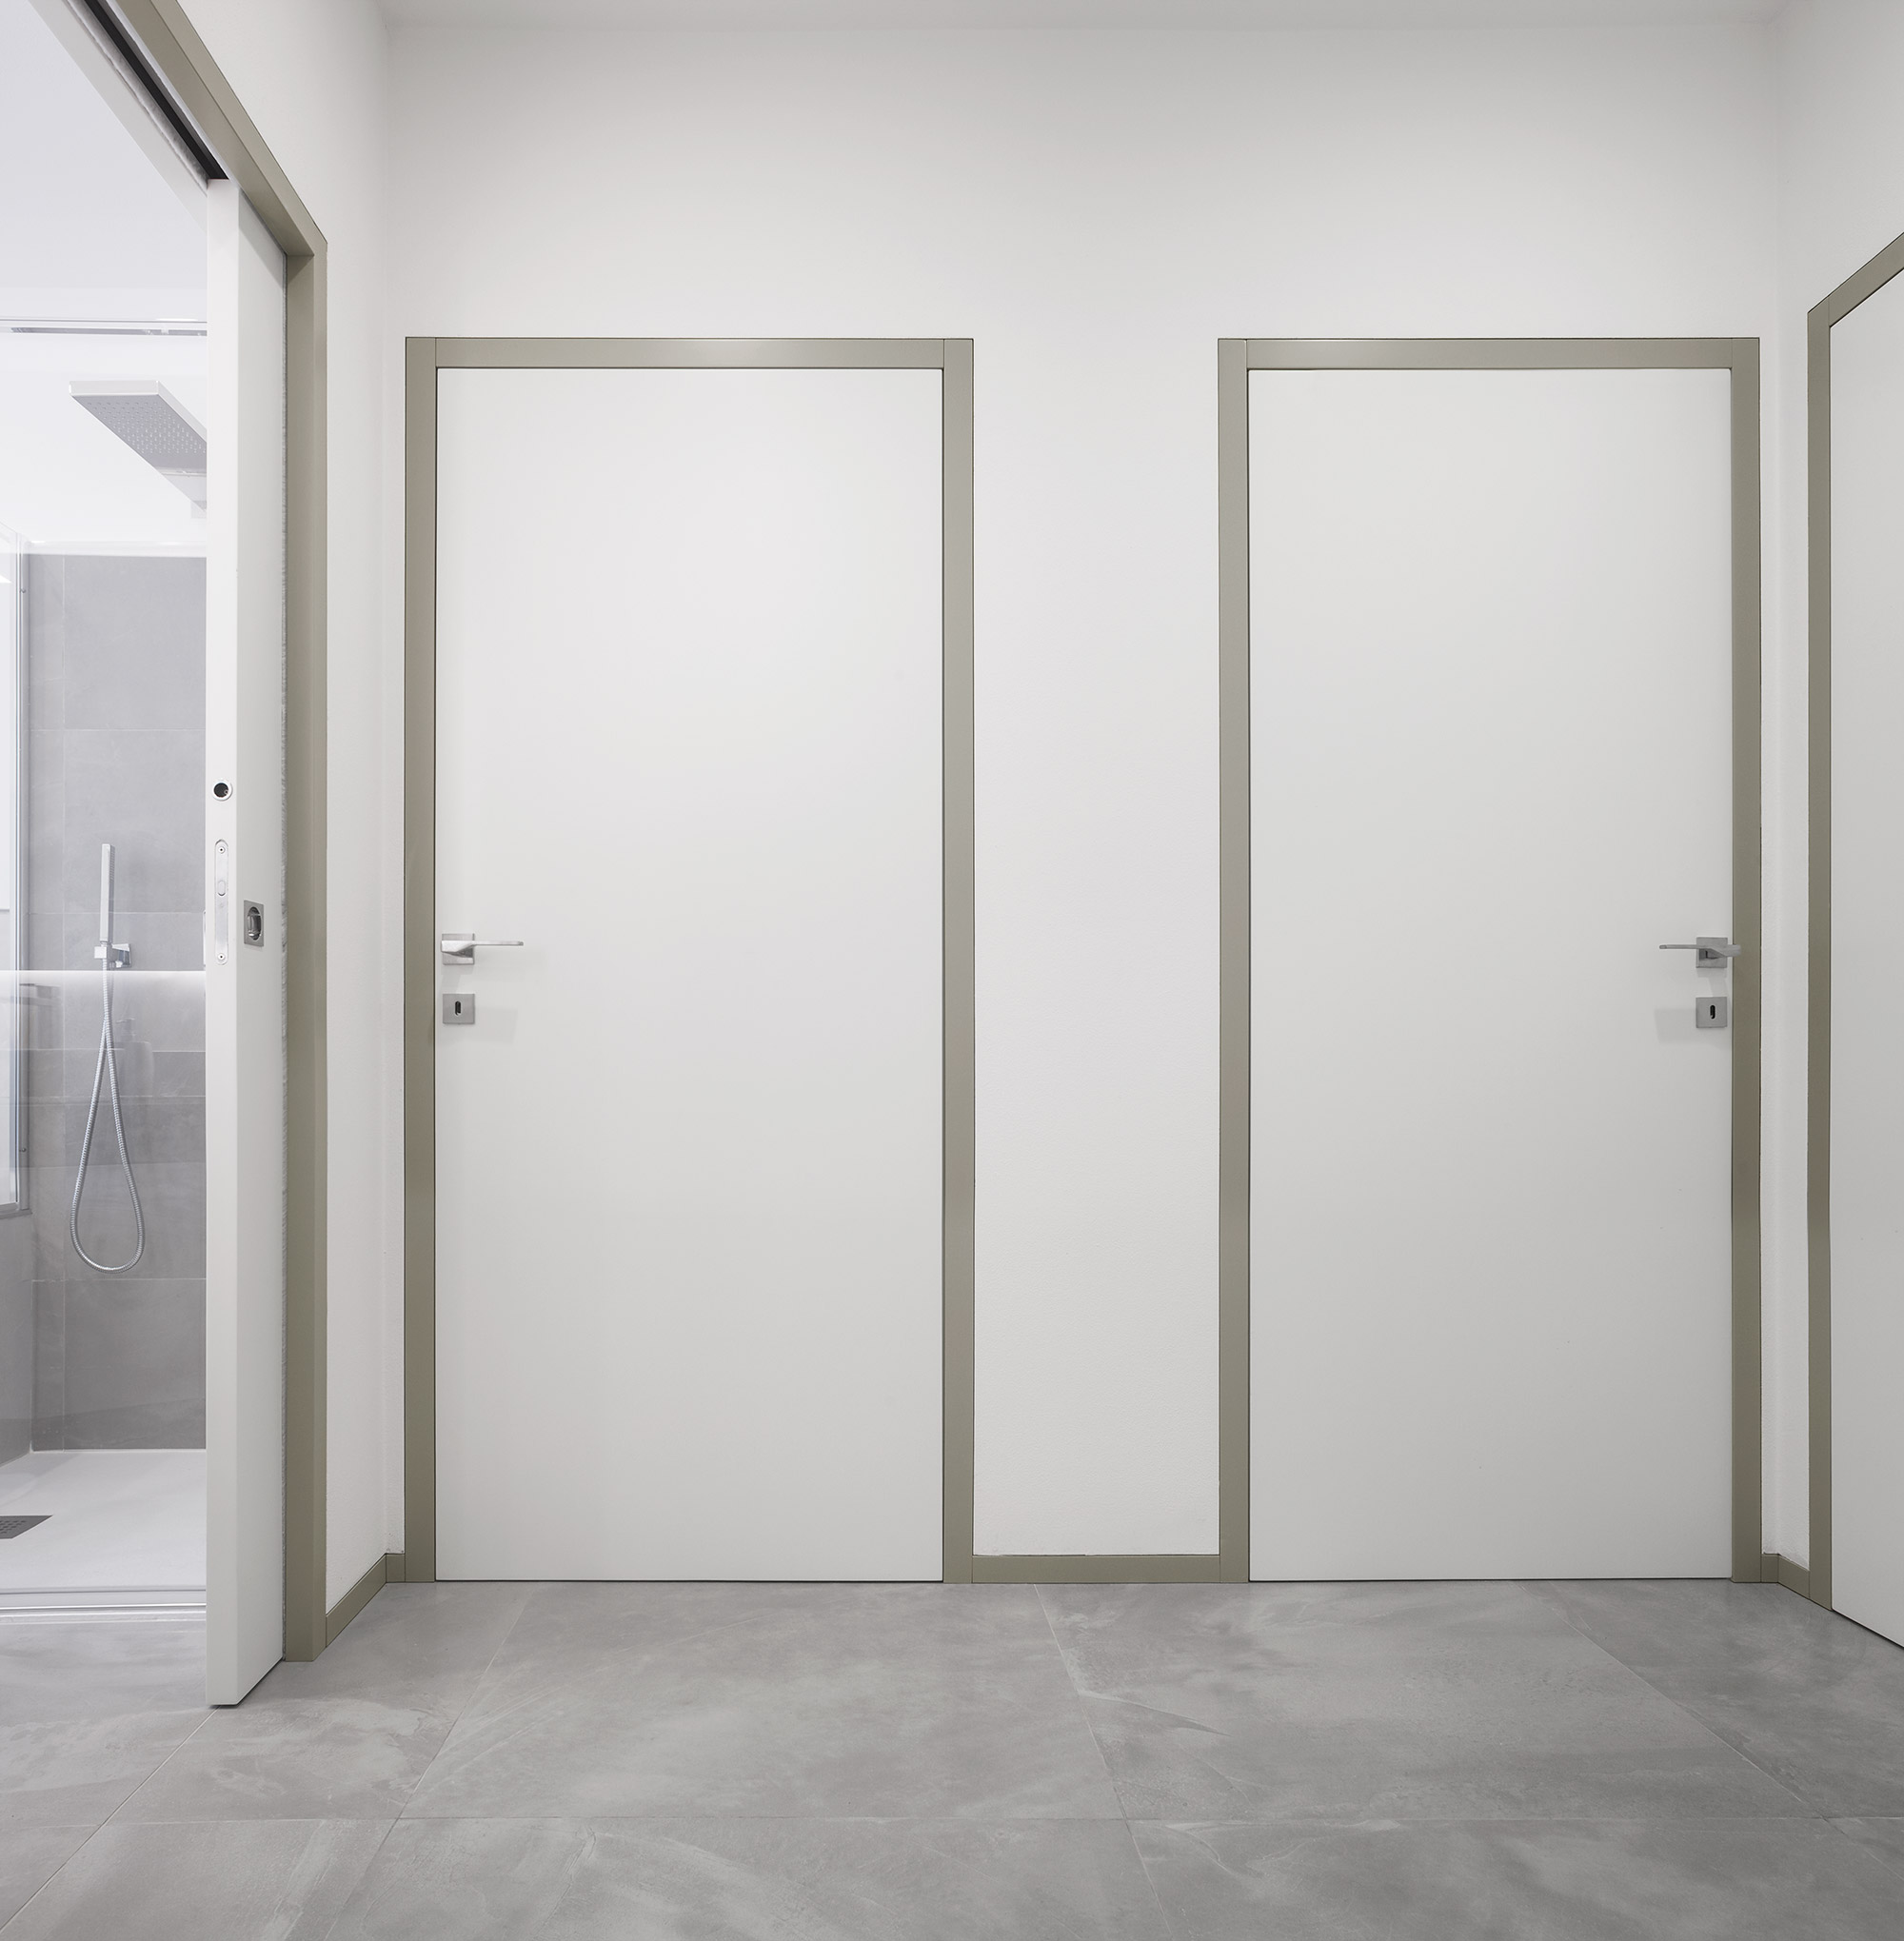 Doors and interior spaces